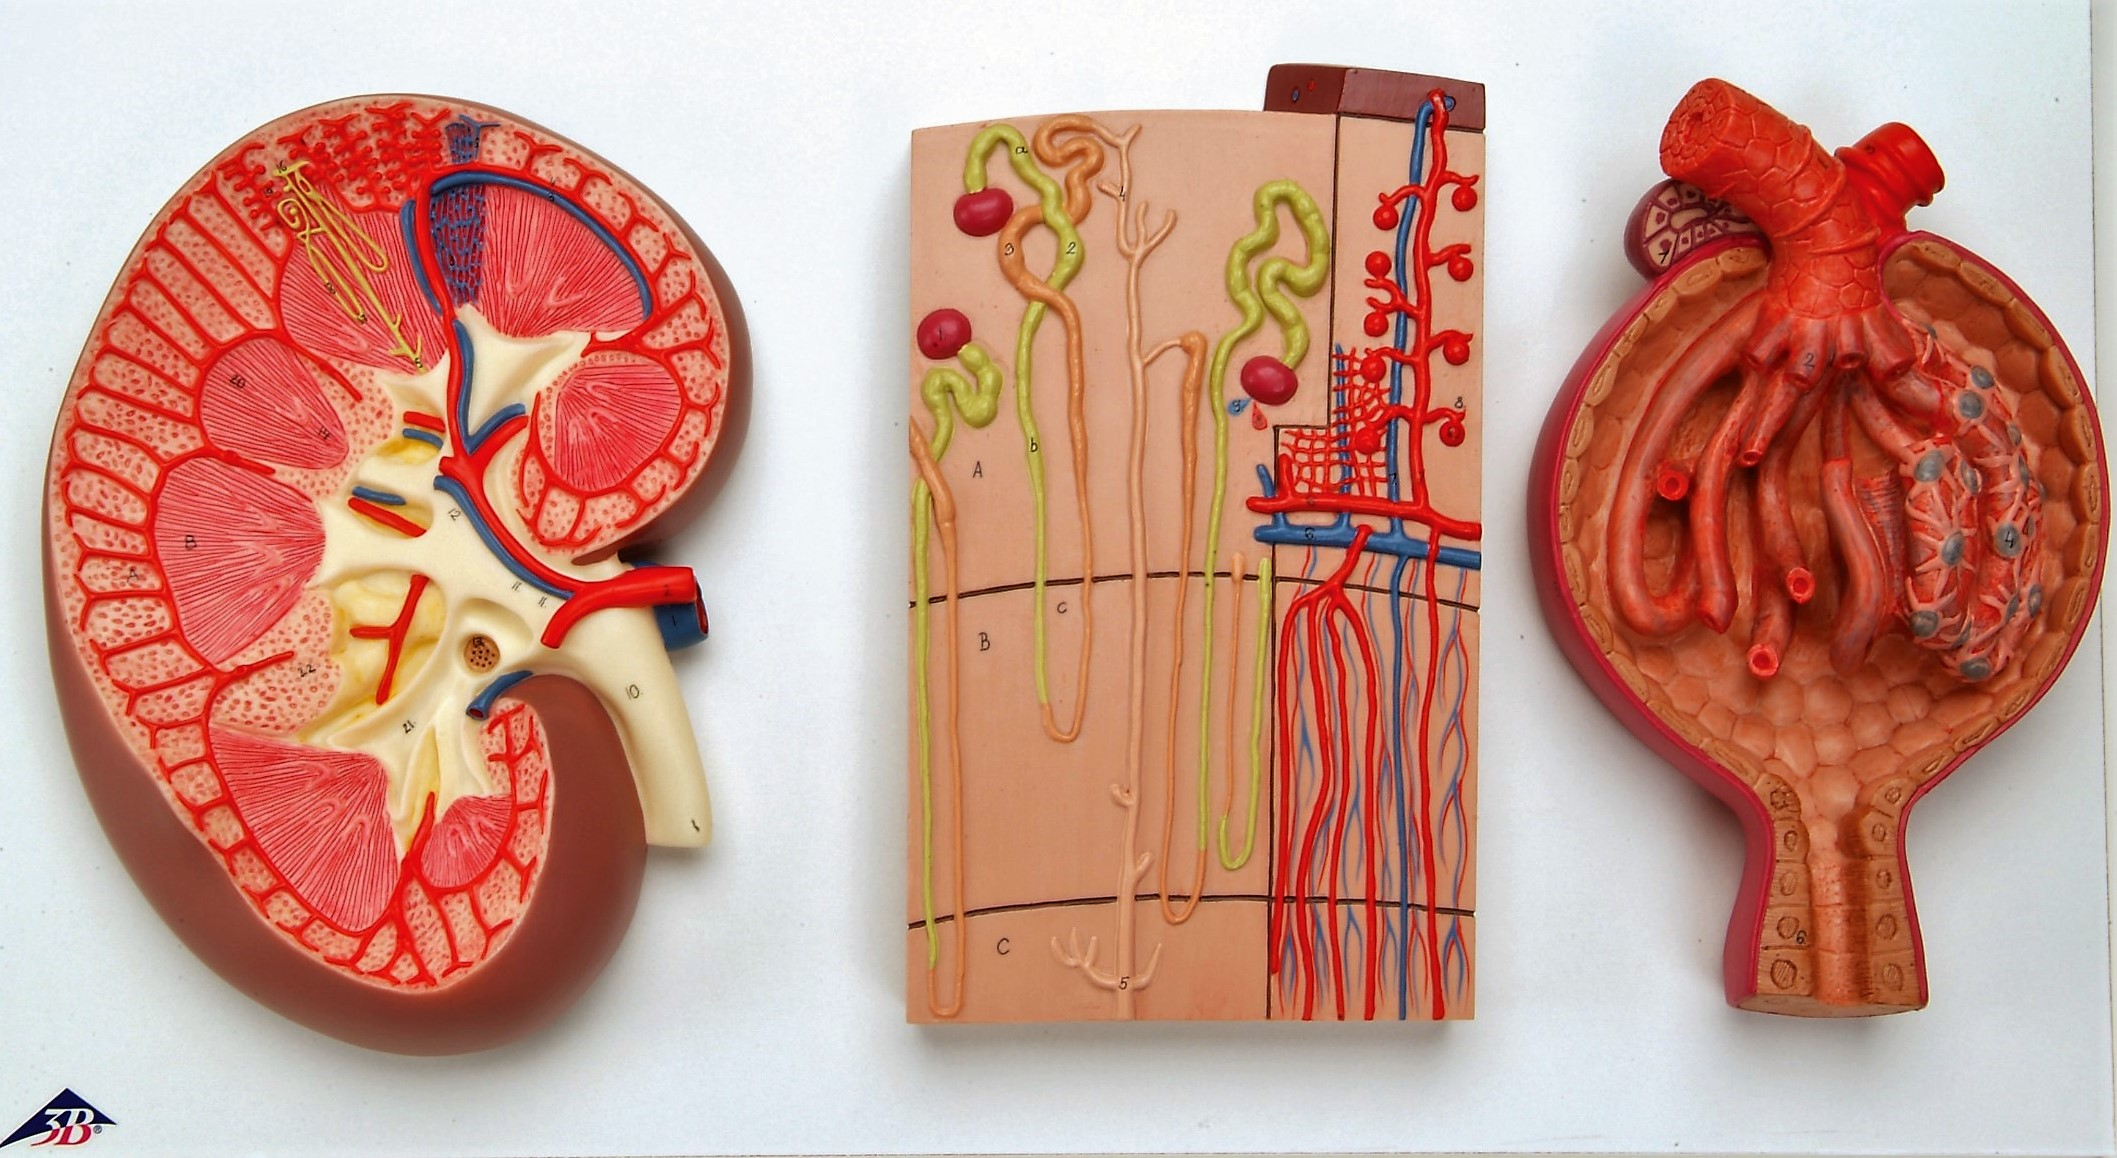 model of the Kidney Section, Nephrons, Blood Vessels and Renal Corpuscle